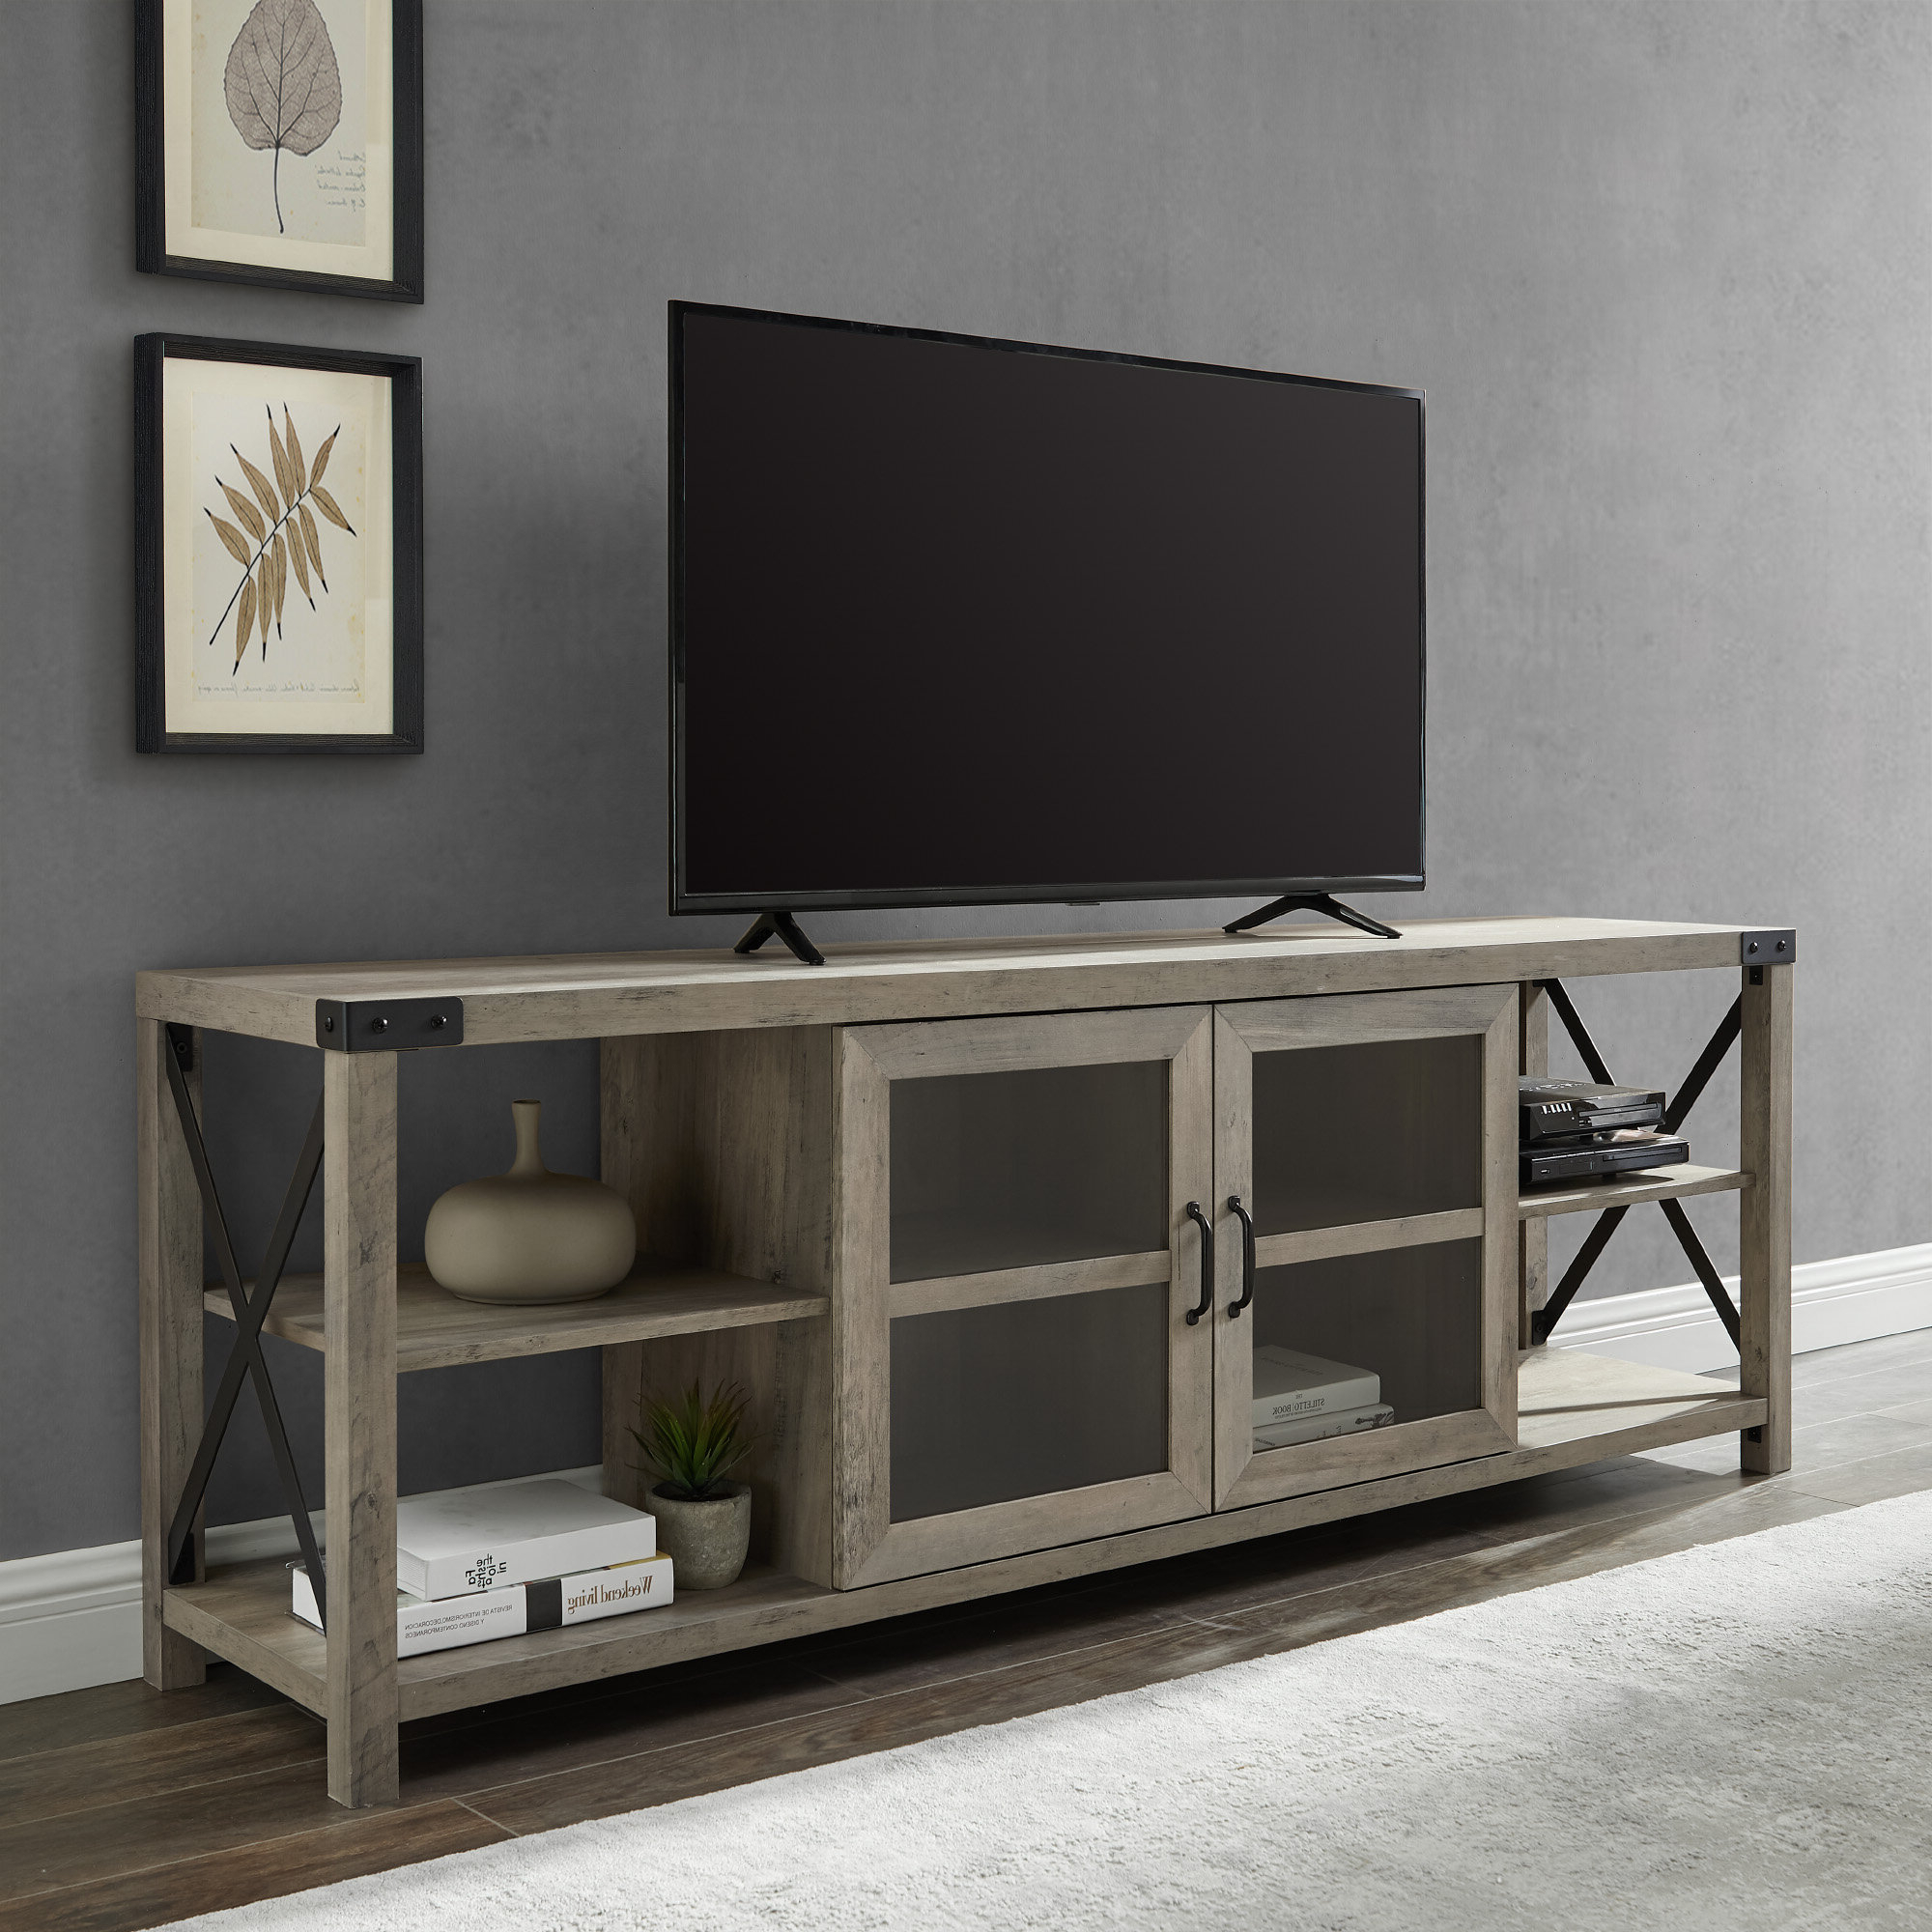 """Famous Colefax Vintage Tv Stands For Tvs Up To 78"""" With Regard To Buffet Tv Stand (View 14 of 20)"""